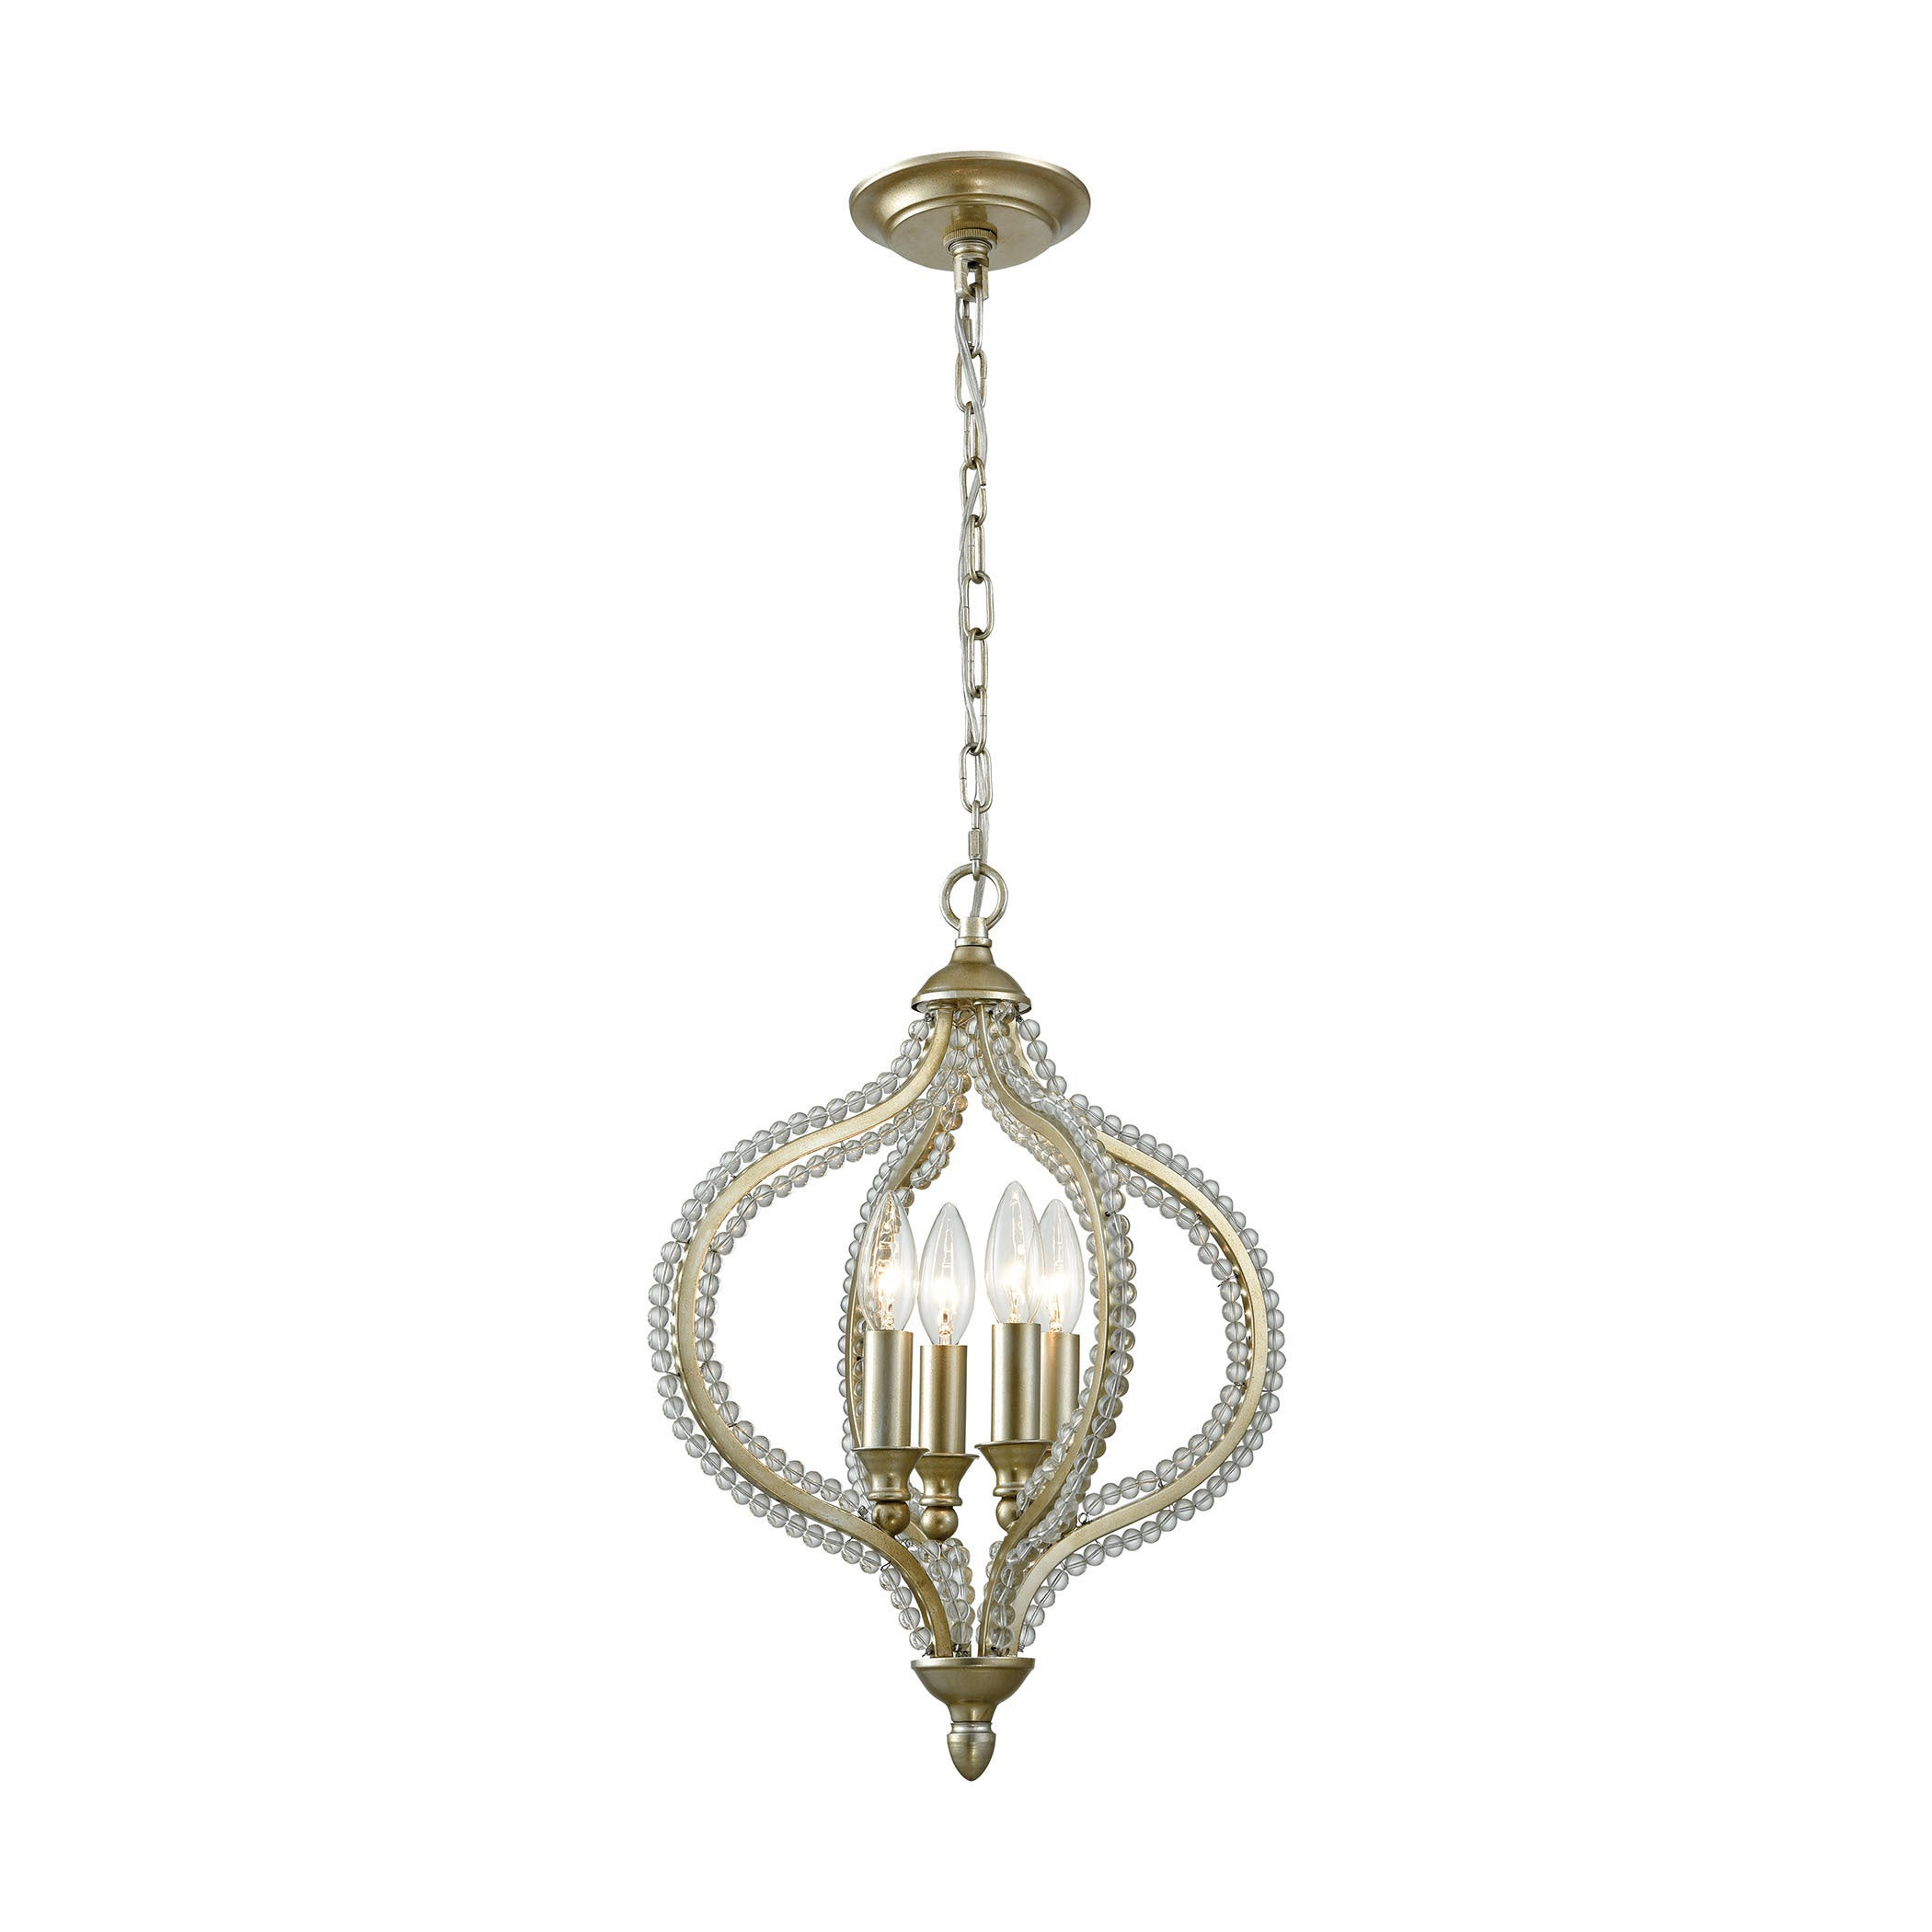 Bennington 4 Light Candle Style Chandeliers In Well Known Bennington 4 Light Pendant, Aged Silver (Gallery 11 of 20)